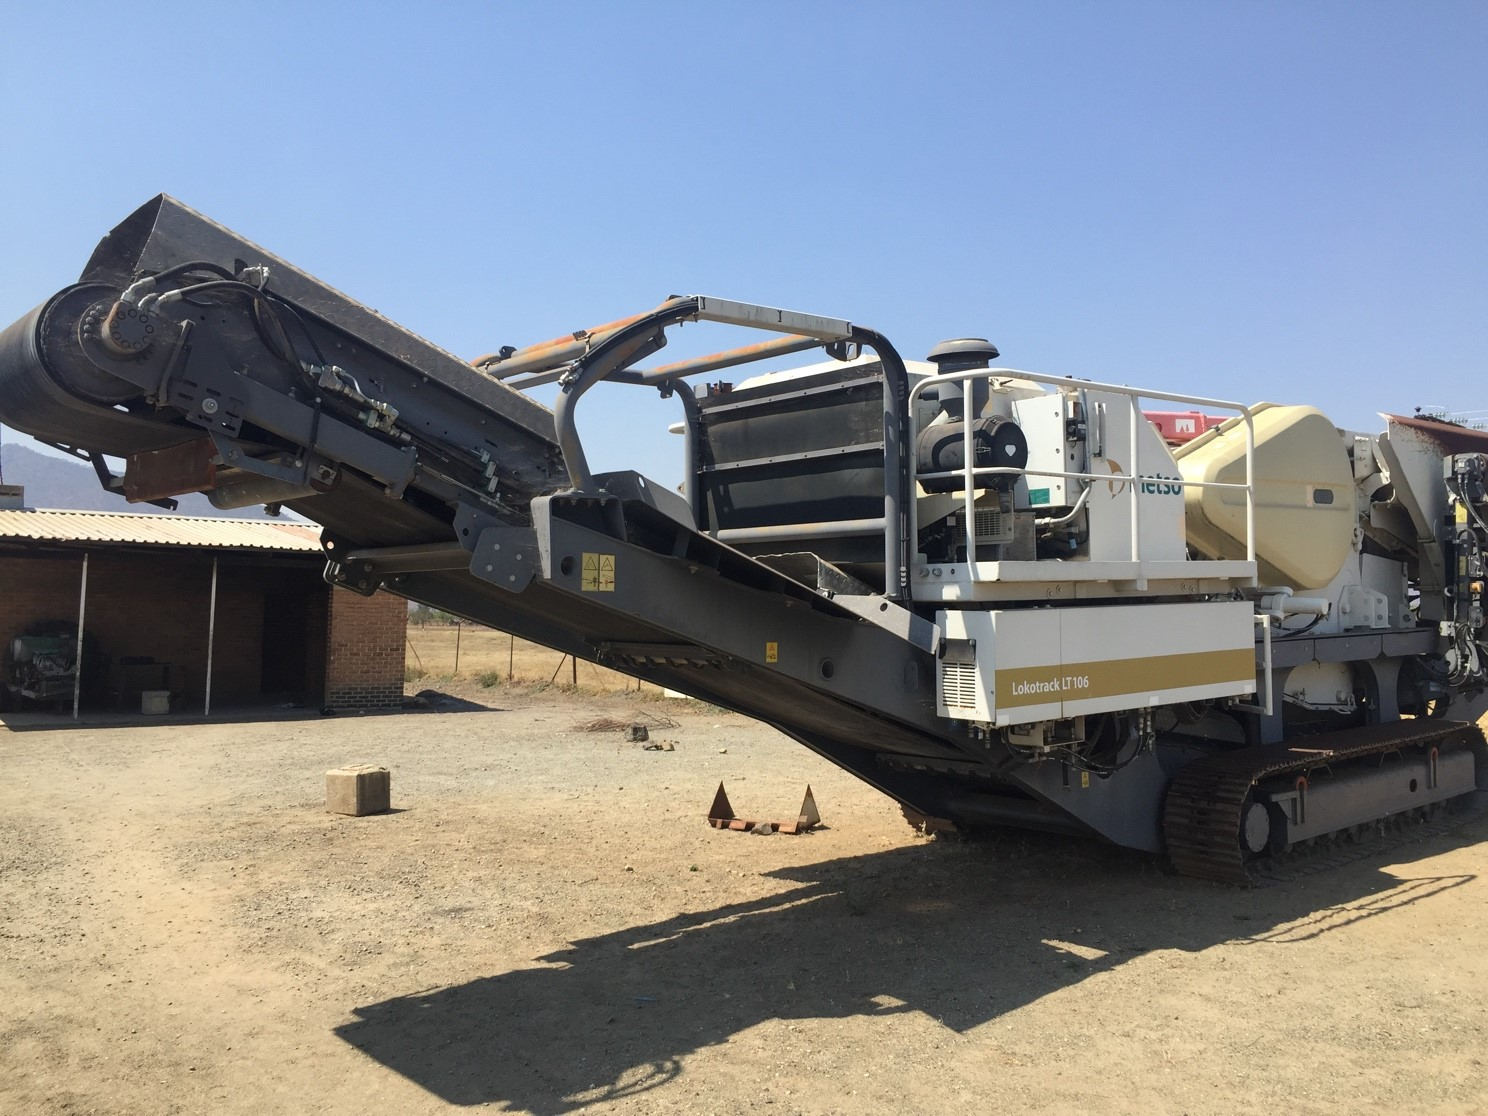 Figure 1:  Mobile Jaw Crusher - Metso Lokotrack LT106 in Lilongwe to be acquired by Force